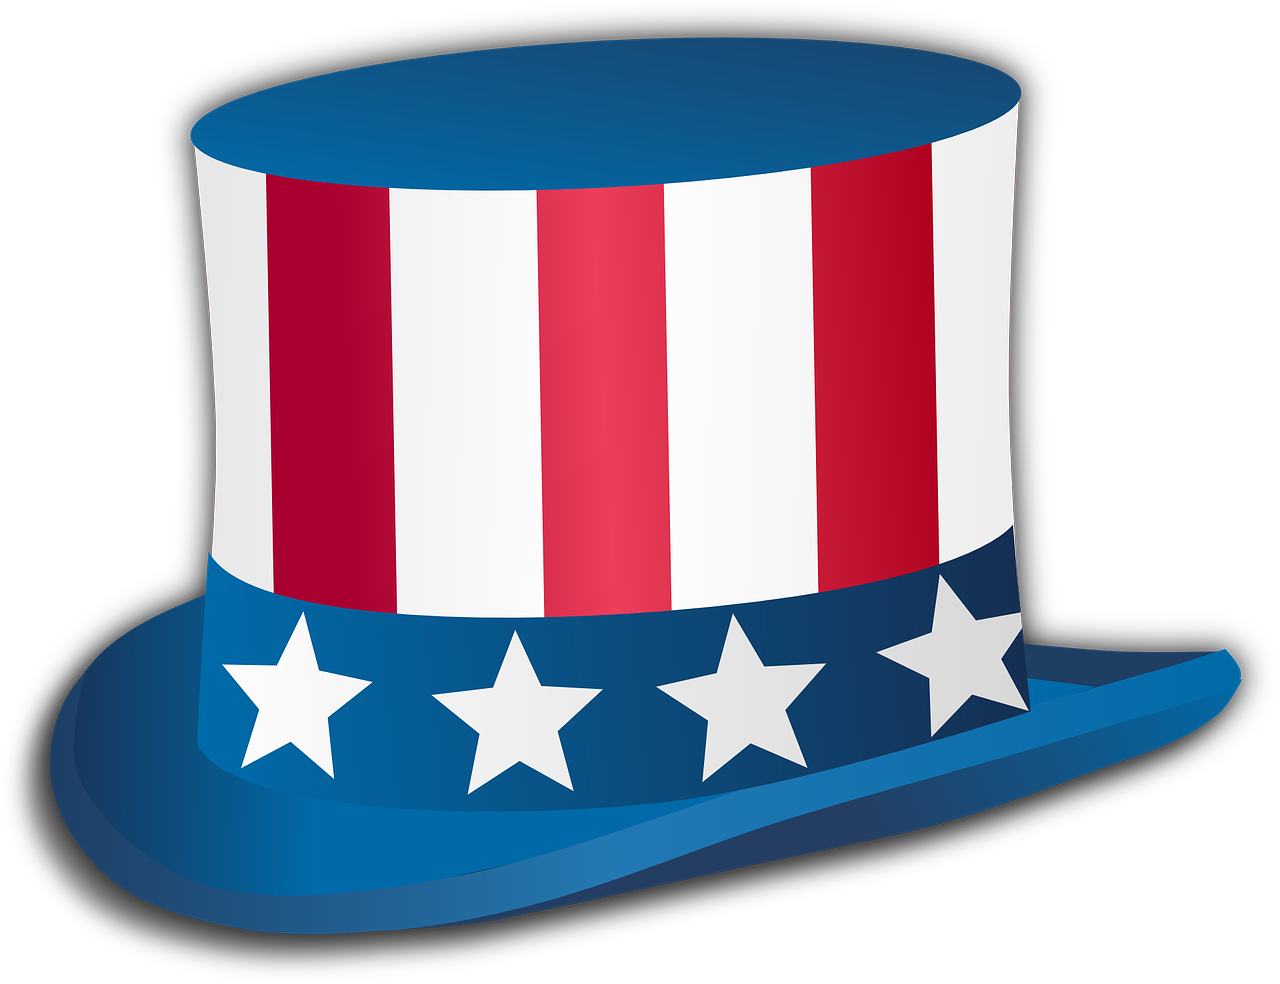 image library stock Beard clipart uncle sam. Political parties and symbols